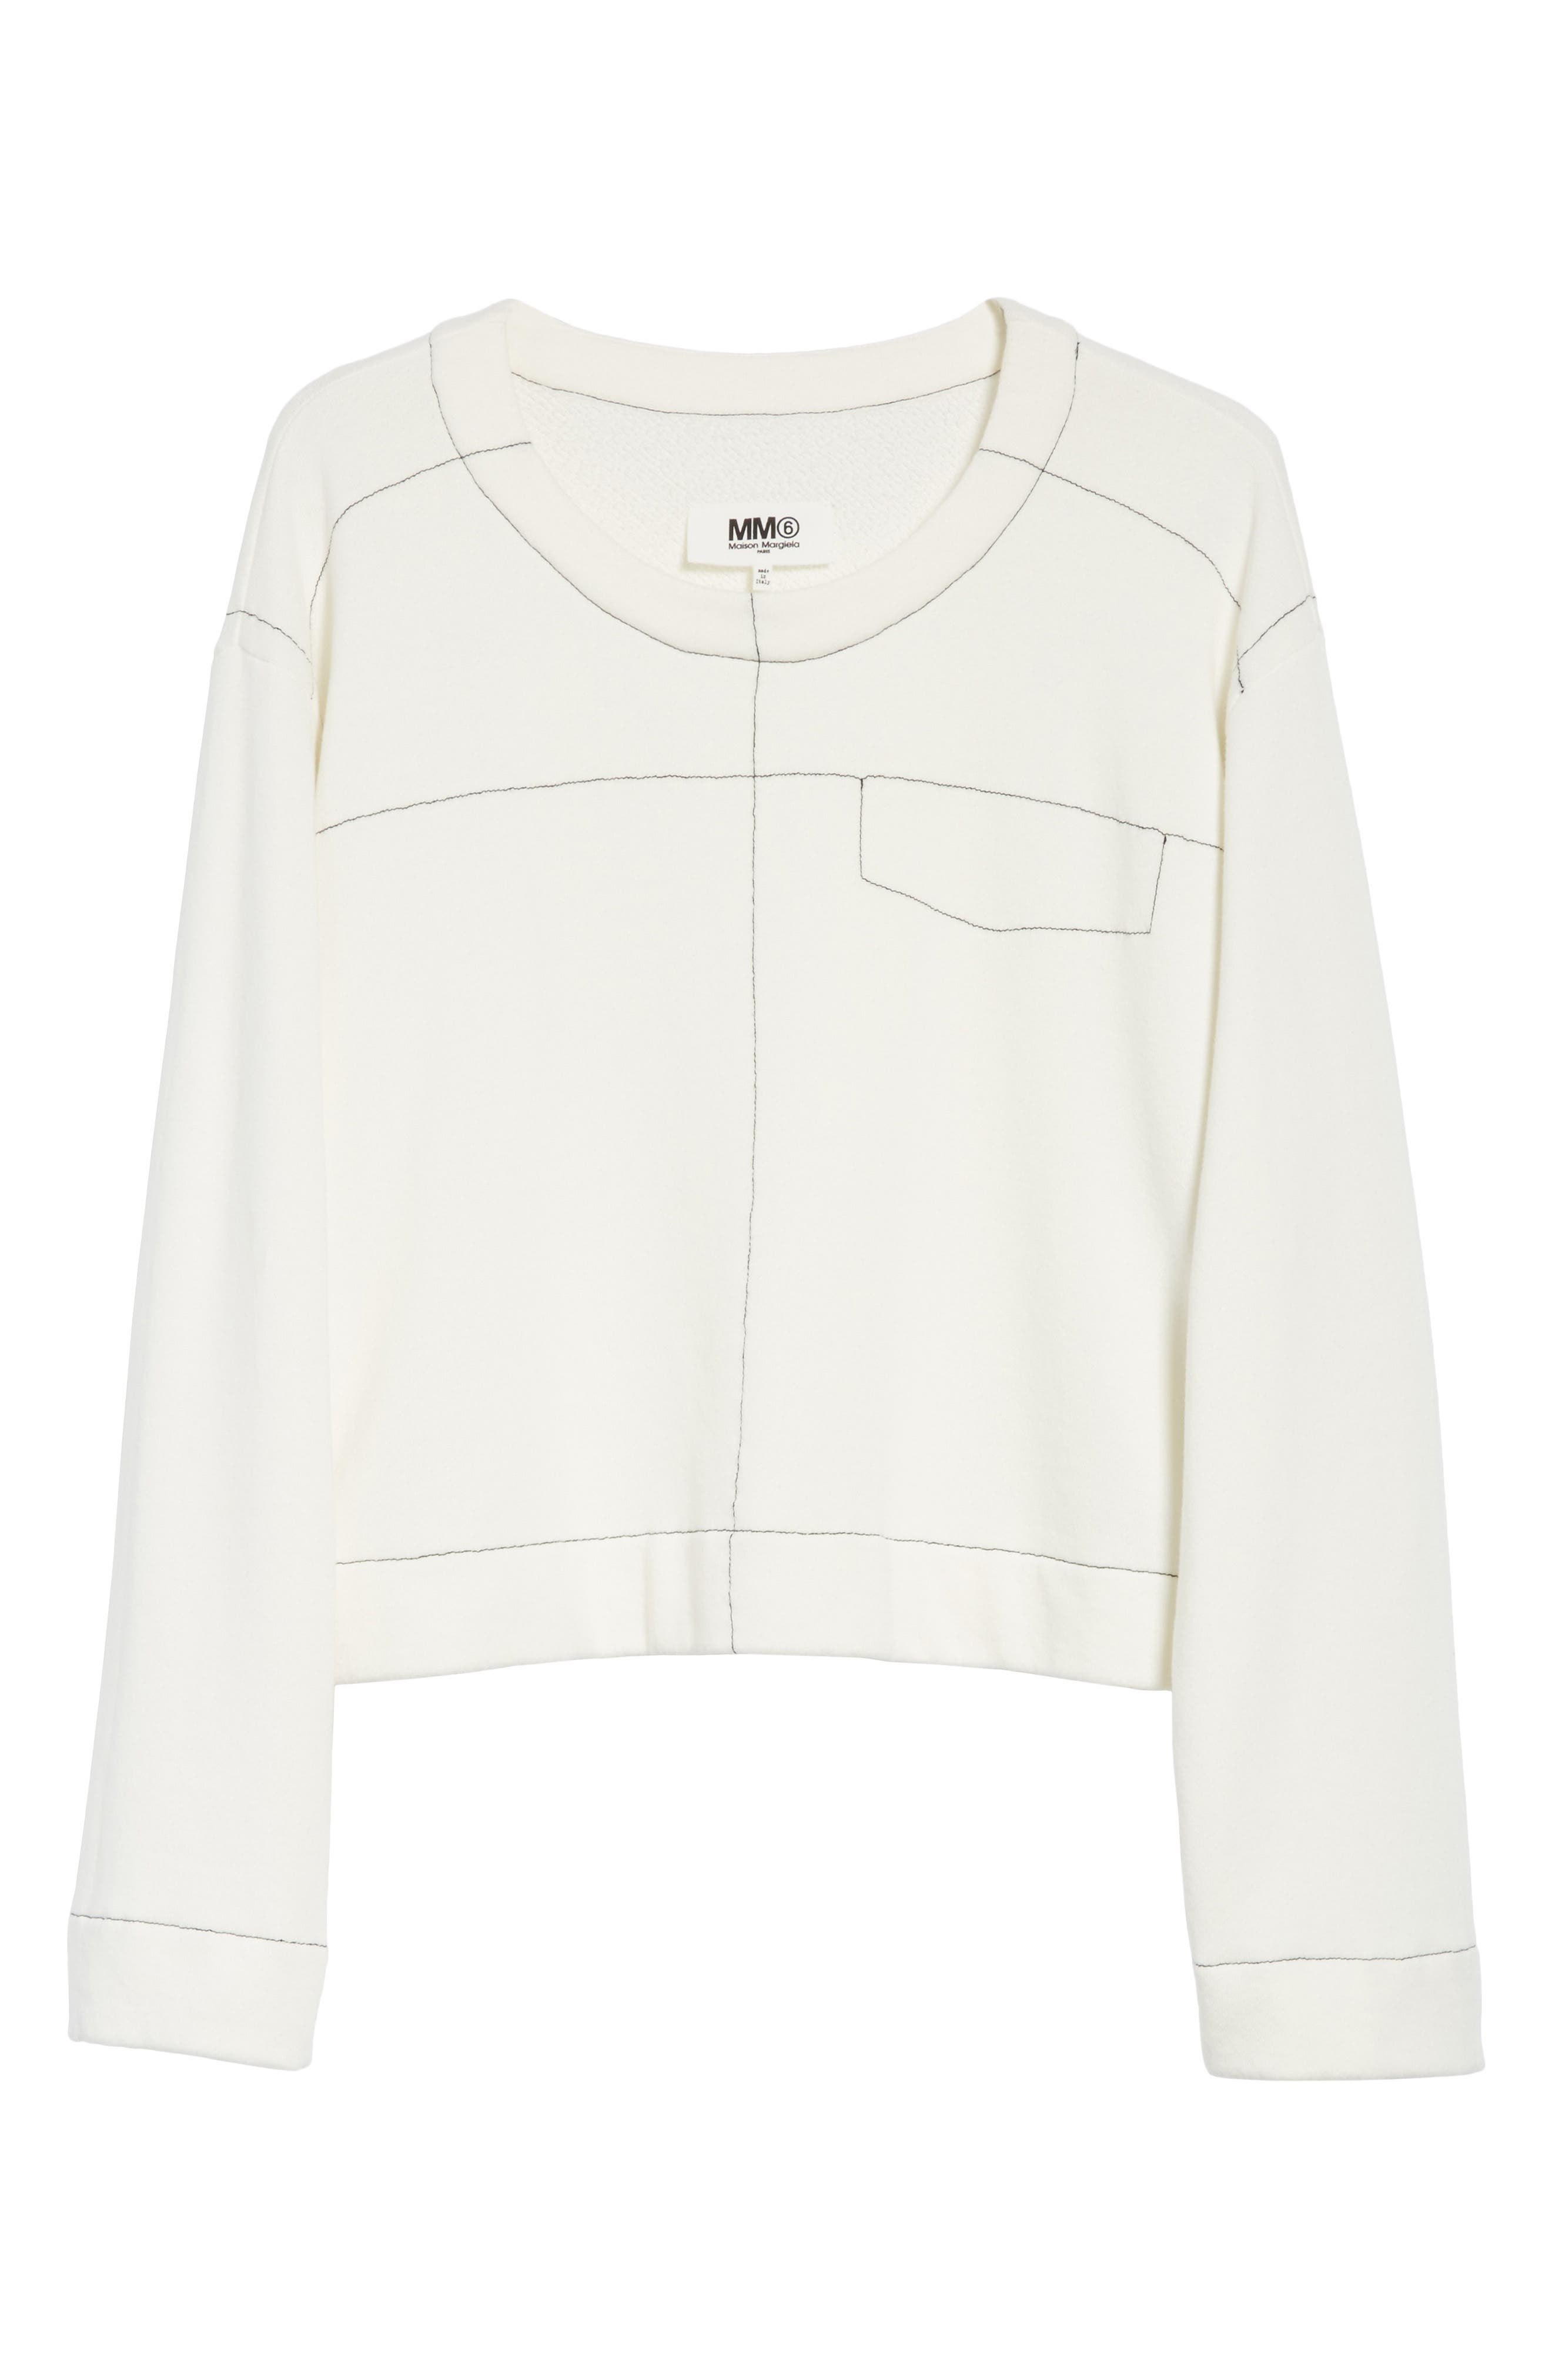 Topstitch Sweater,                             Alternate thumbnail 6, color,                             Off White